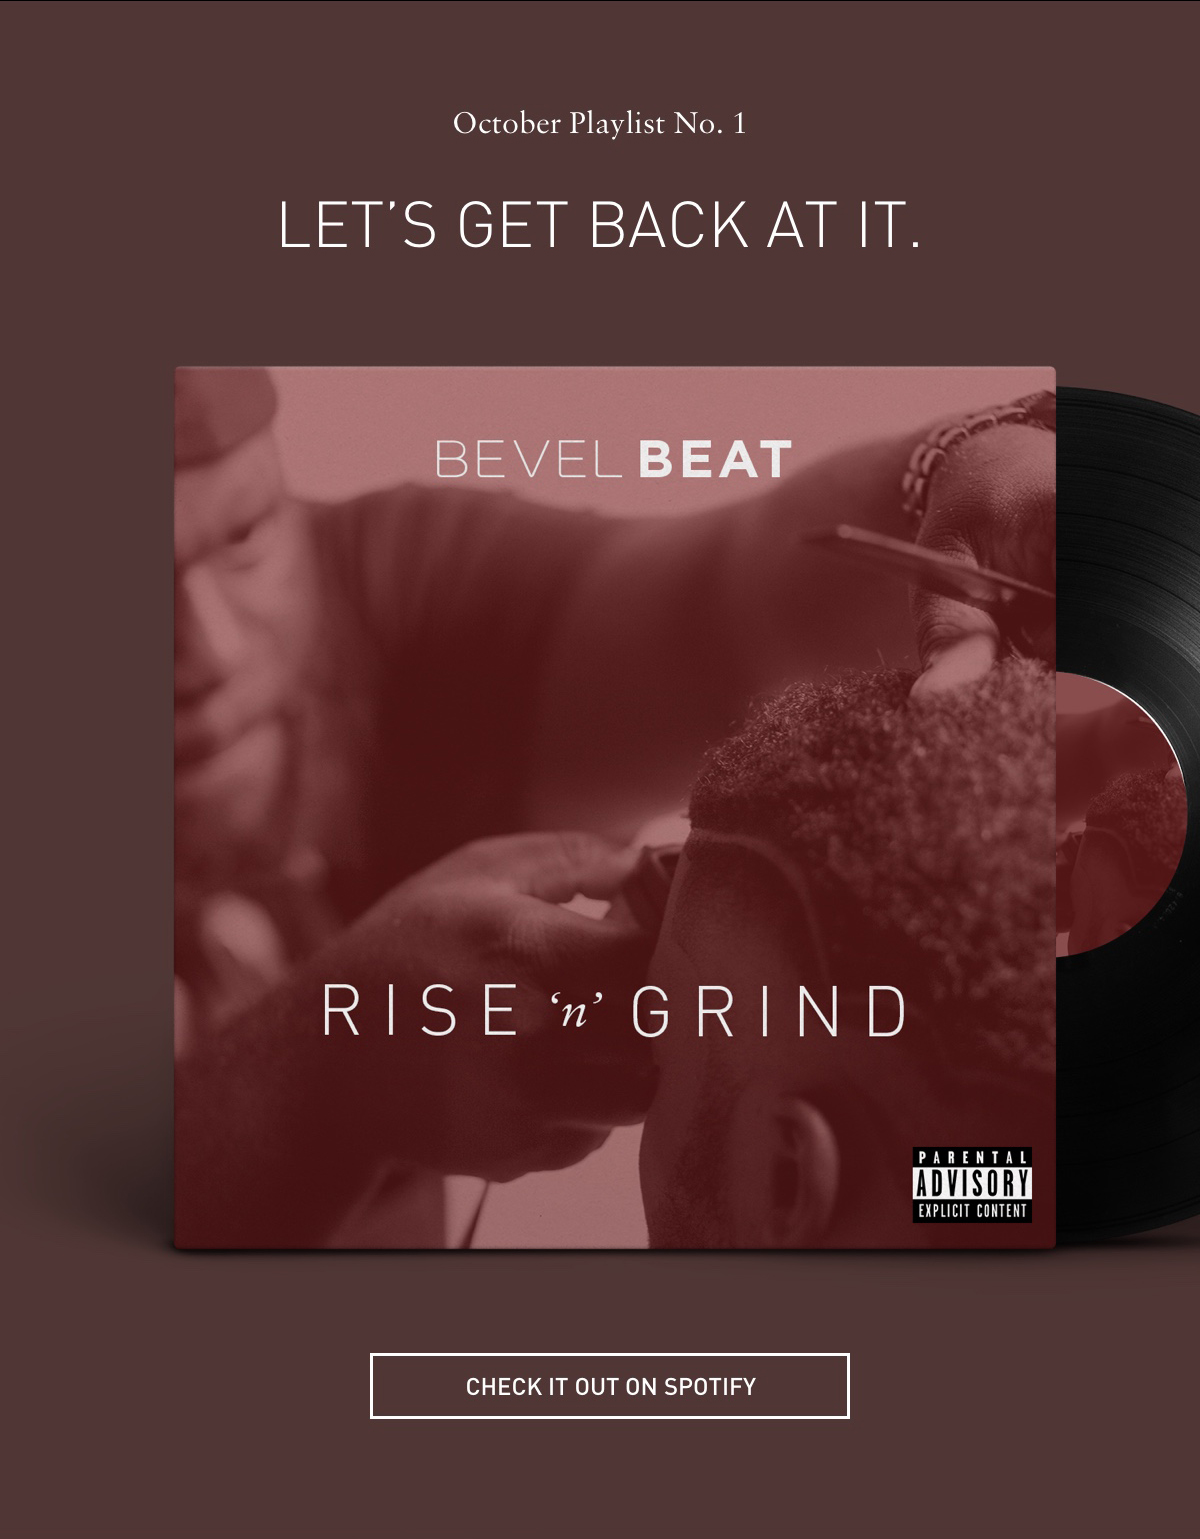 October Playlist No. 1 LET'S GET BACK AT IT. BEVEL BEAT RISE 'n' GRIND CHECK IT OUT ON SPOTIFY